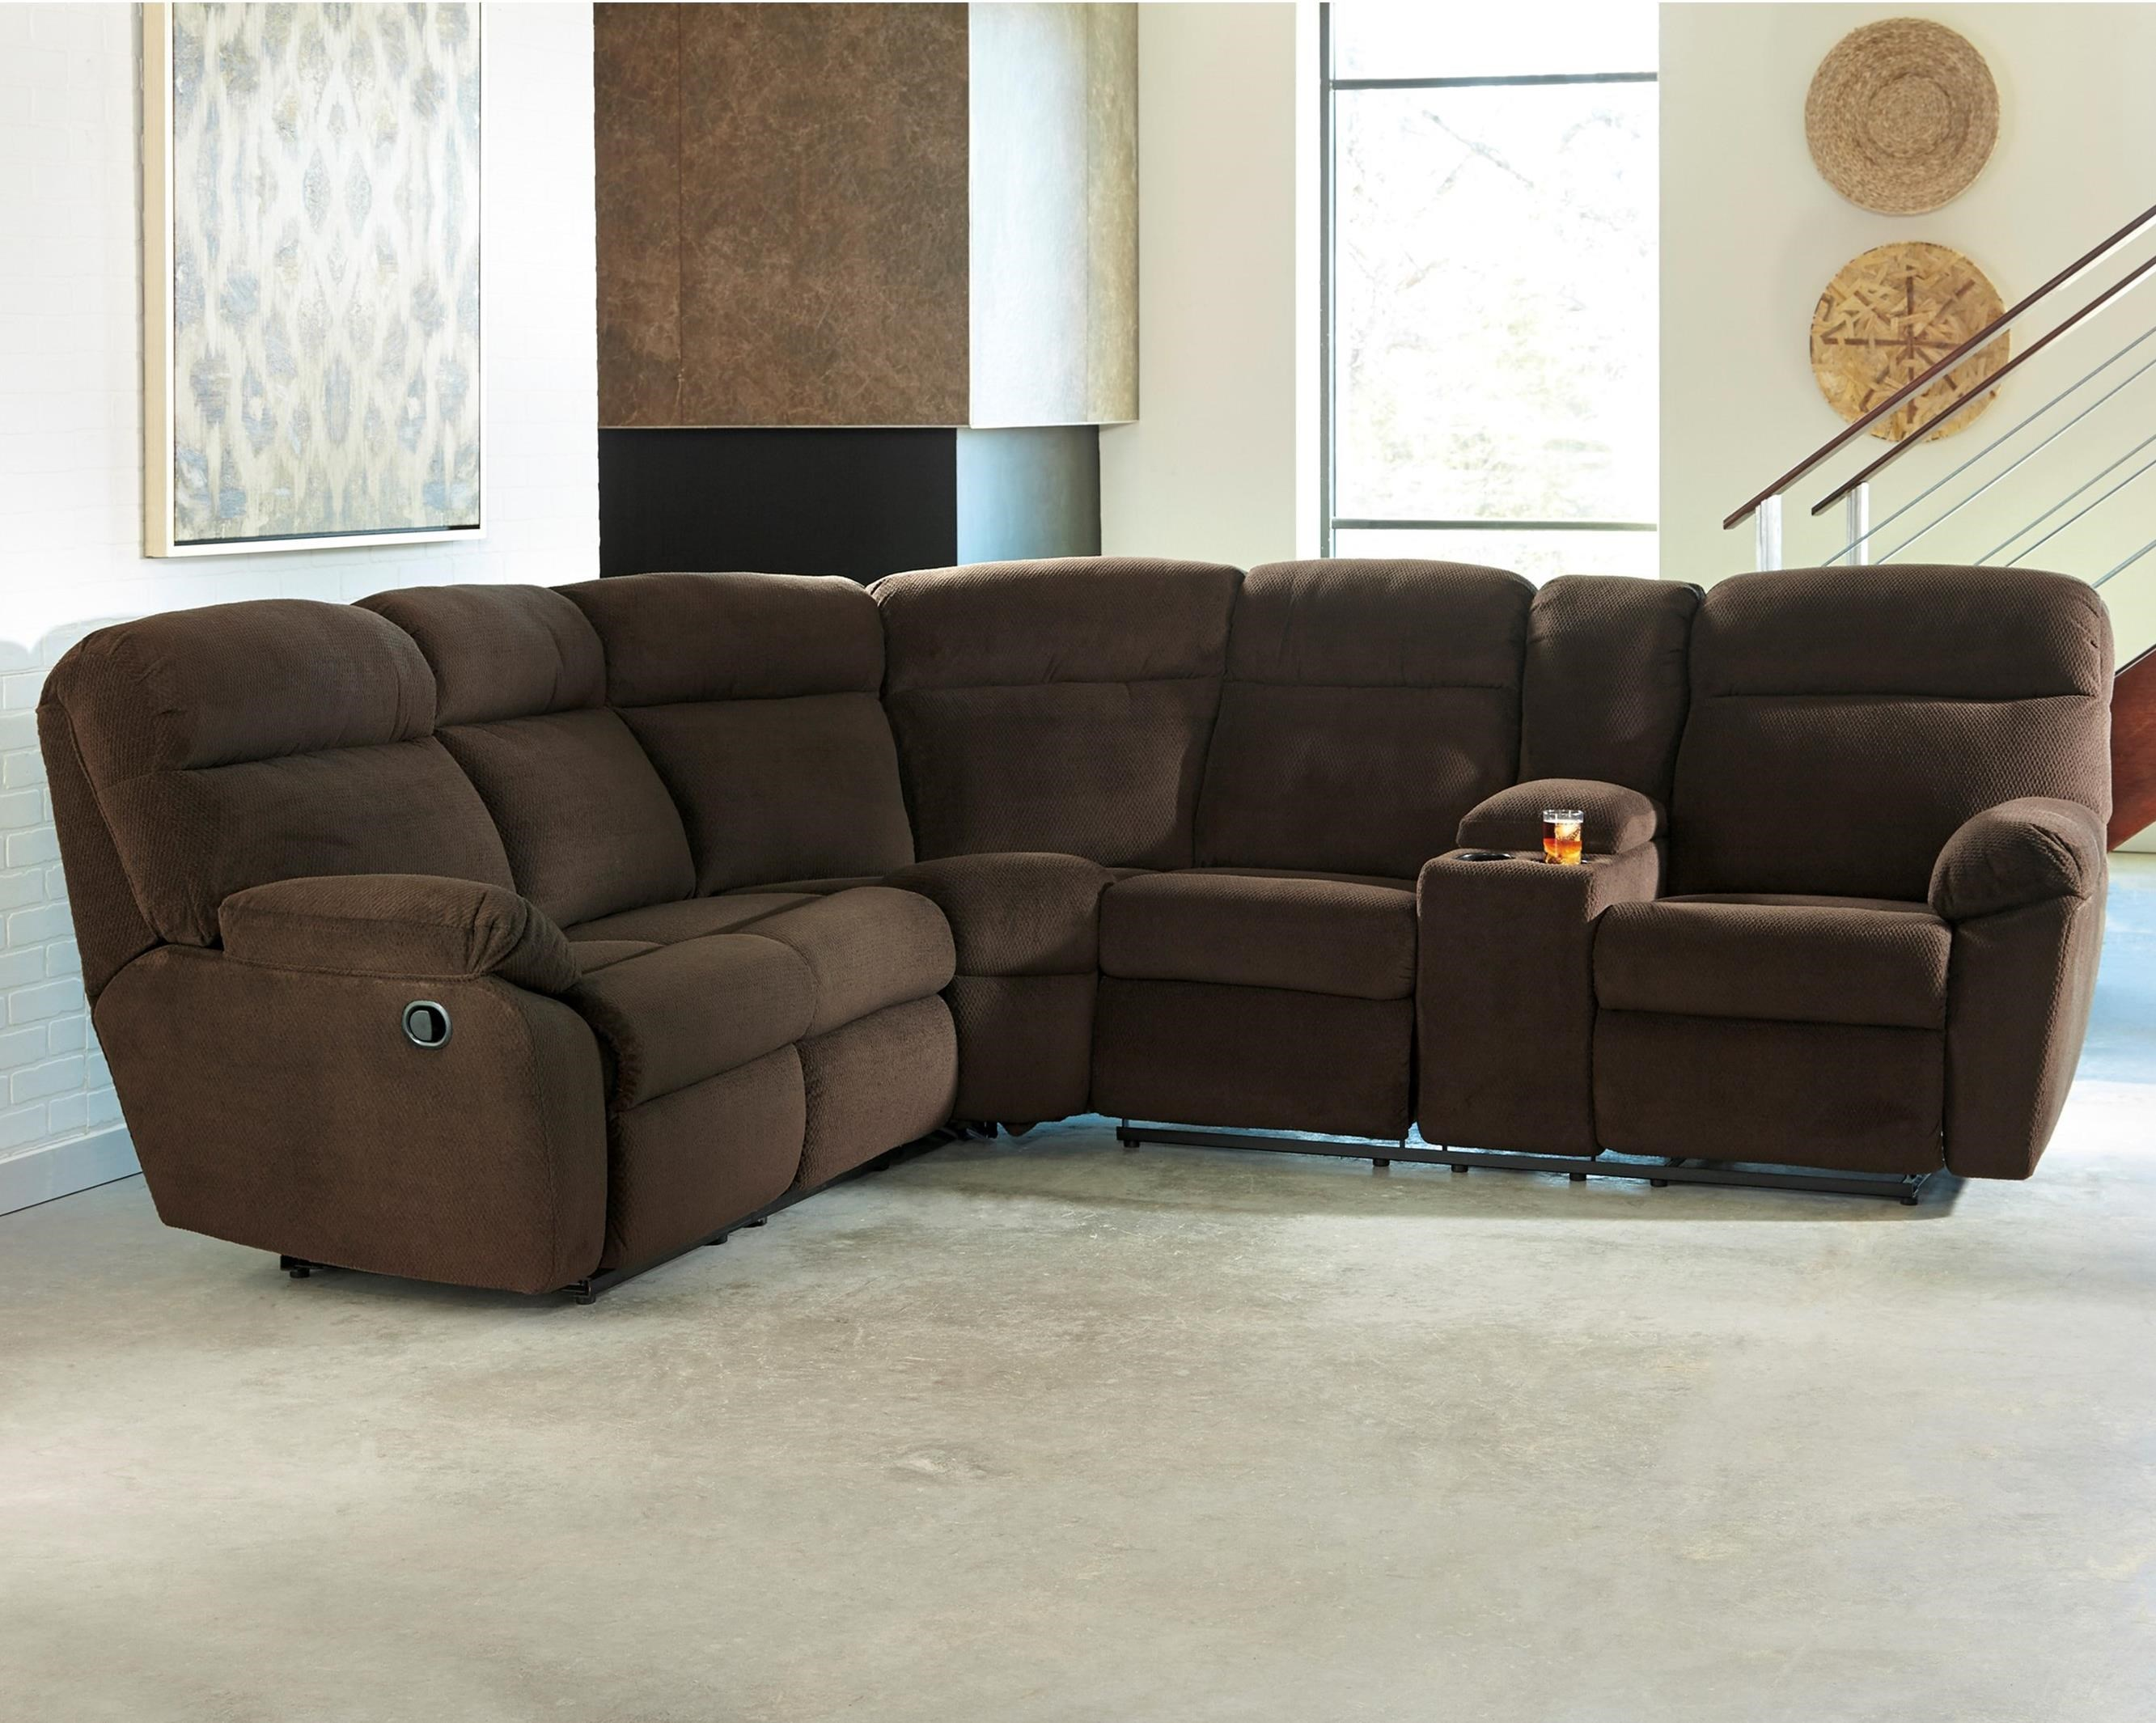 Ashley/Benchcraft Demarion 2-Piece Reclining Corner Sectional - Item Number: 5230348+67